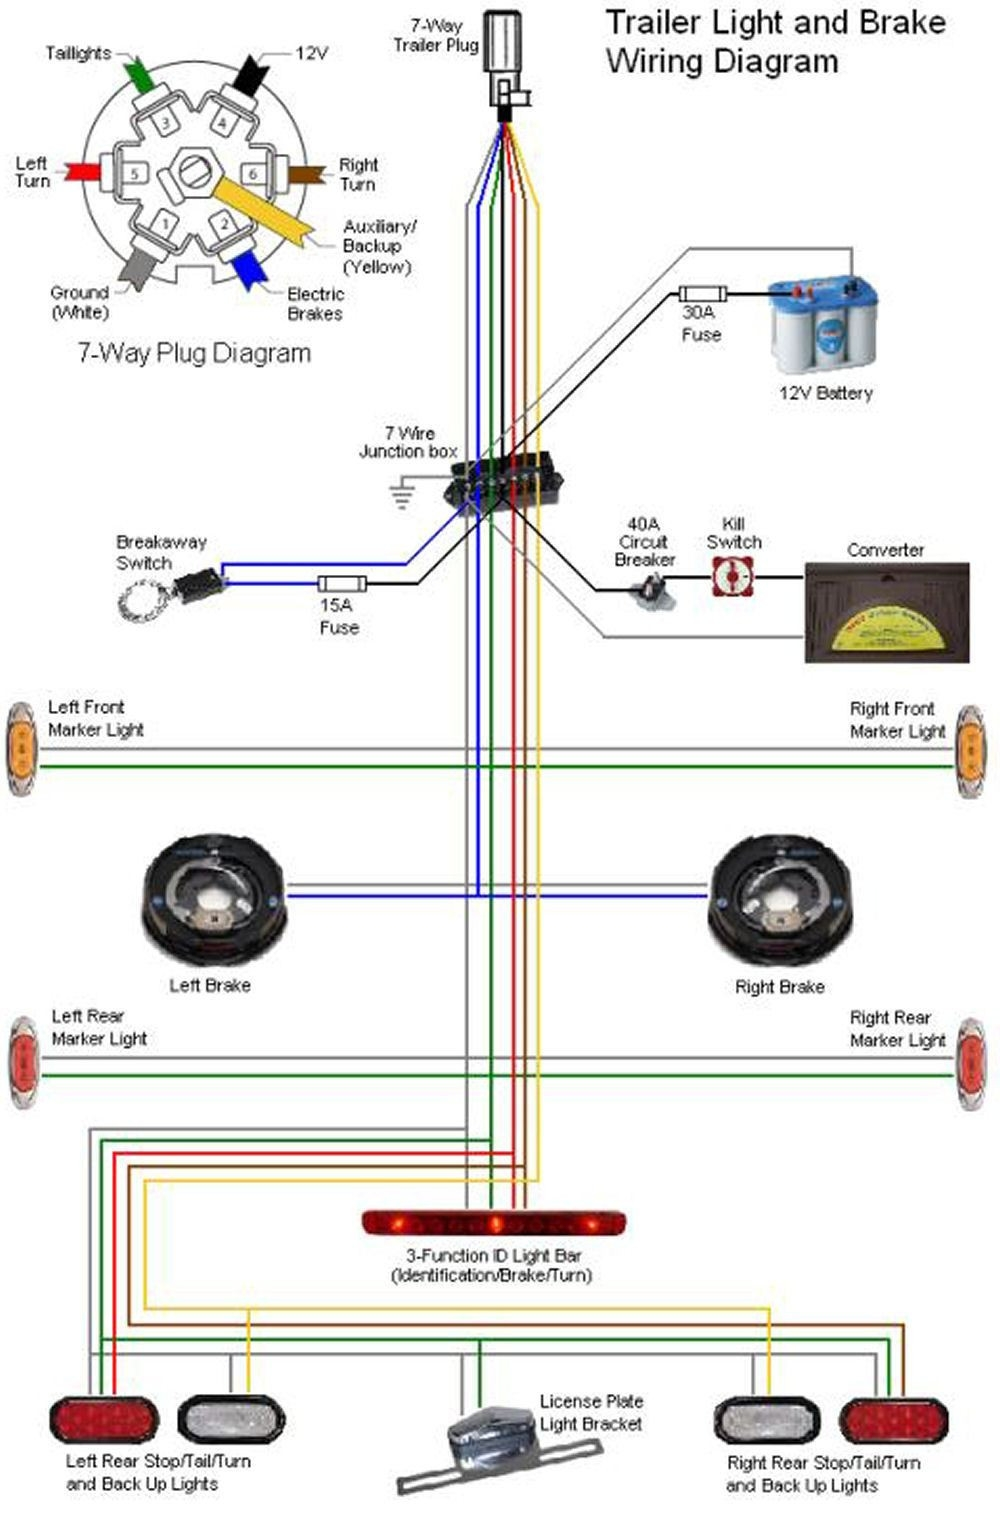 trailer wiring schematic 7 way free wiring diagram. Black Bedroom Furniture Sets. Home Design Ideas